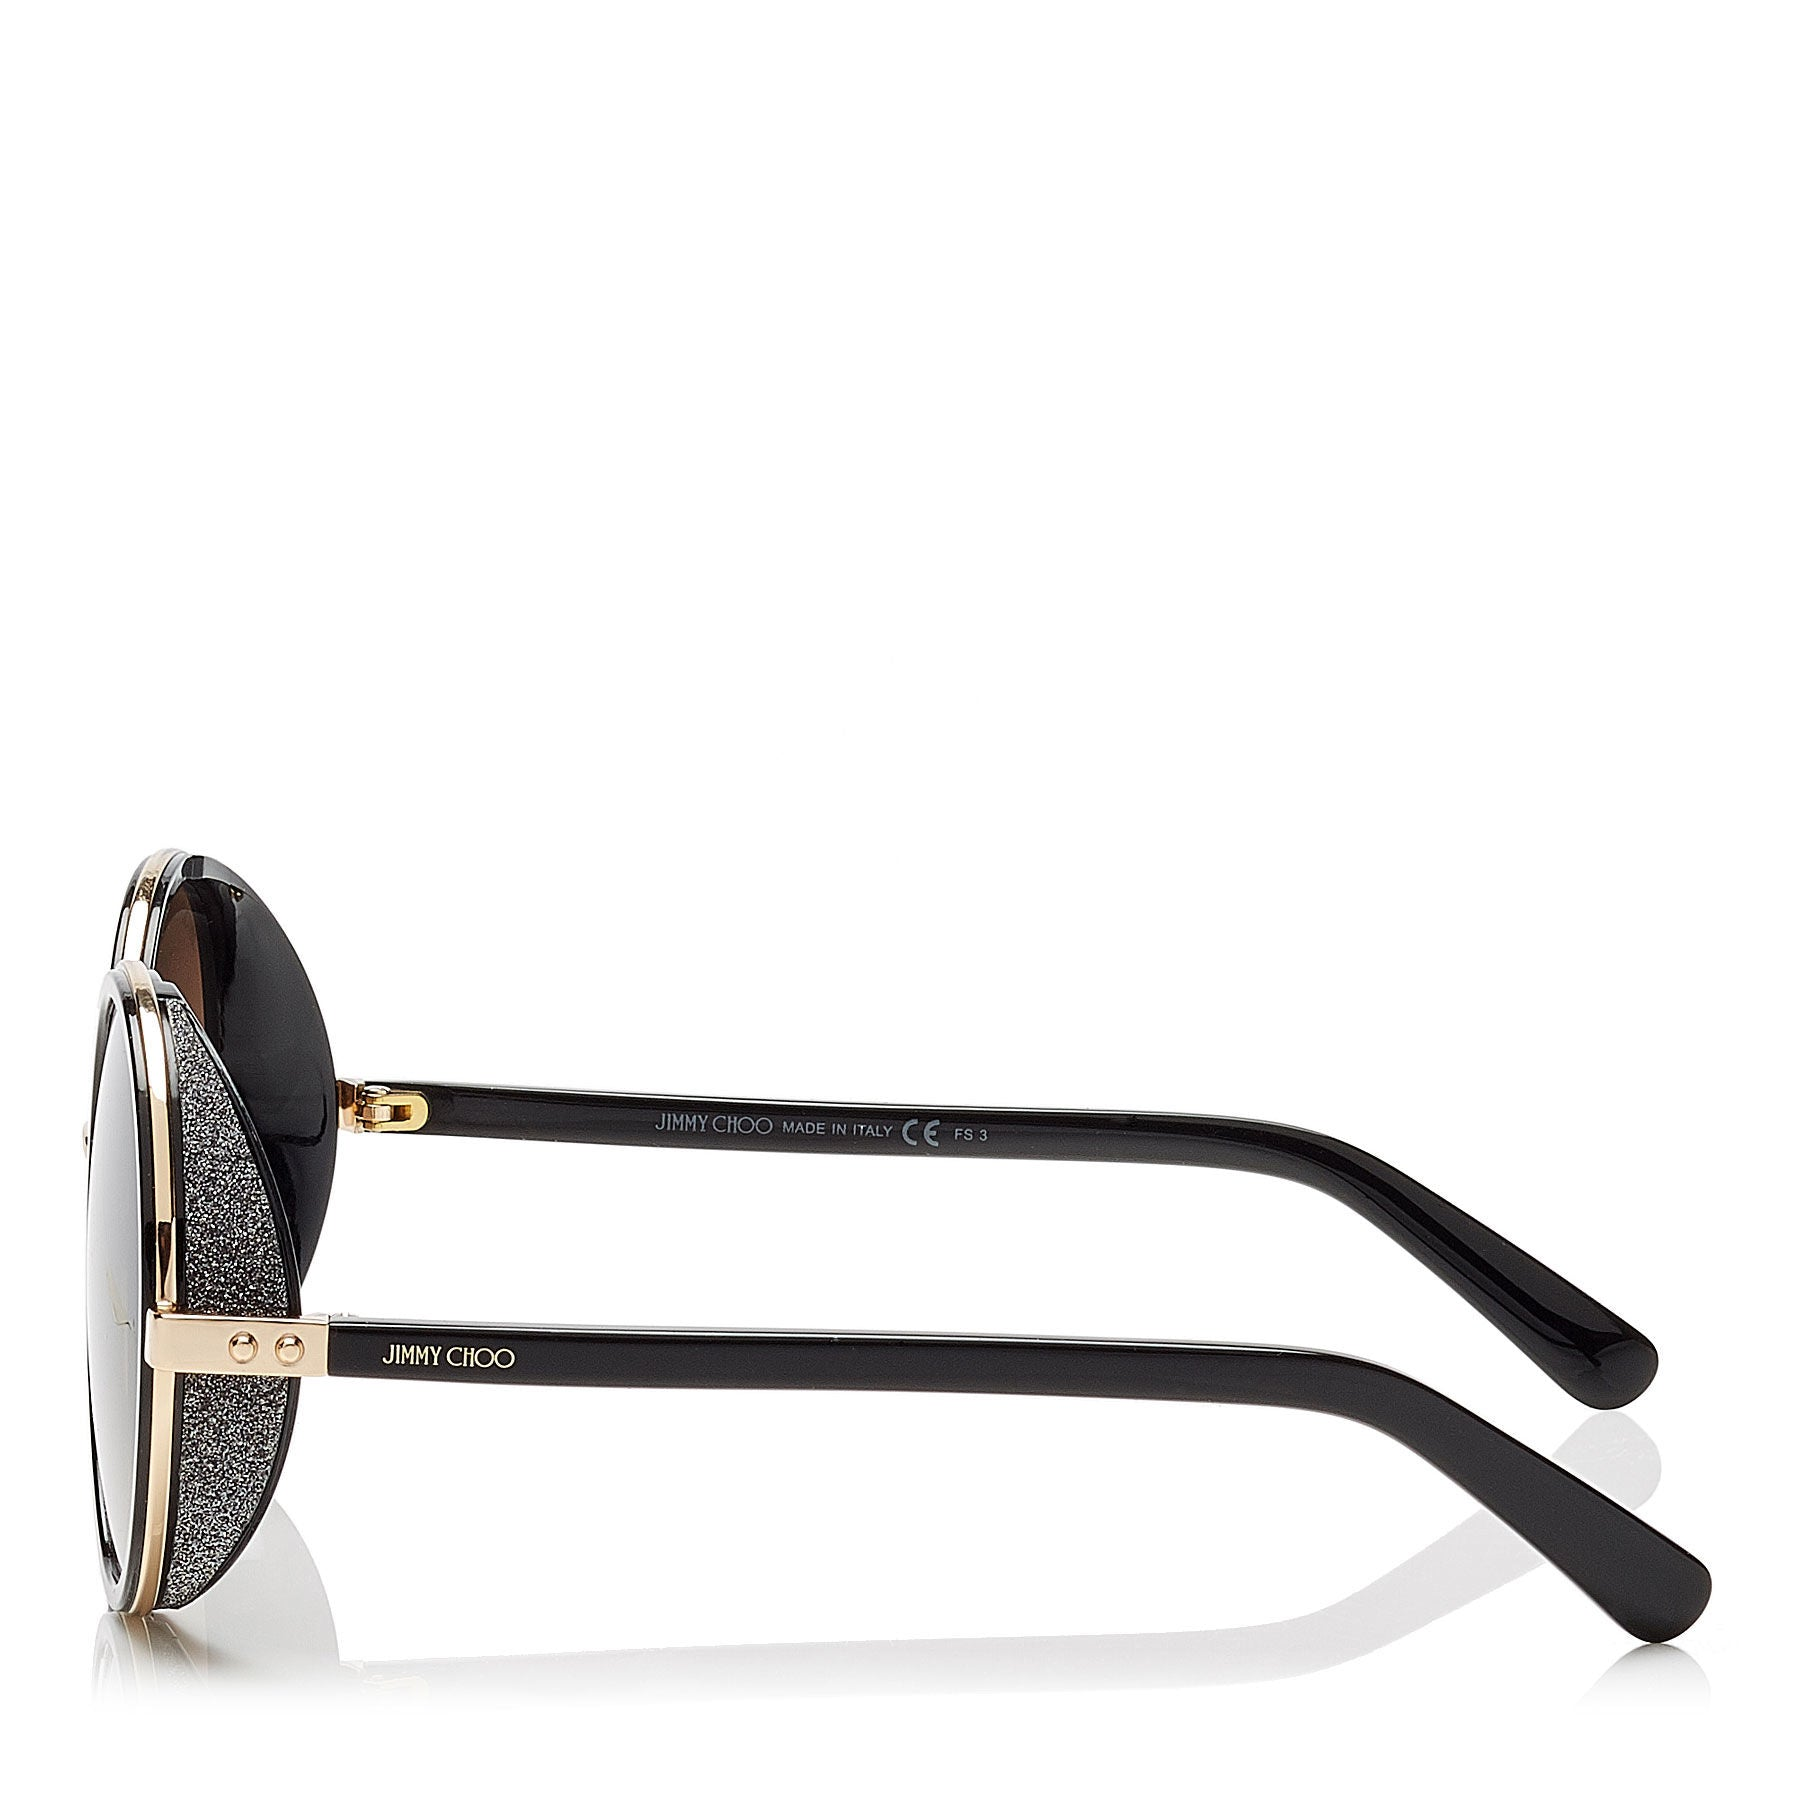 JIMMY CHOO Andie Rose Gold and Black Acetate Round Framed Sunglasses with Gold and Silver Fabric Detailing ITEM NO. ANDIES54EJ7Q